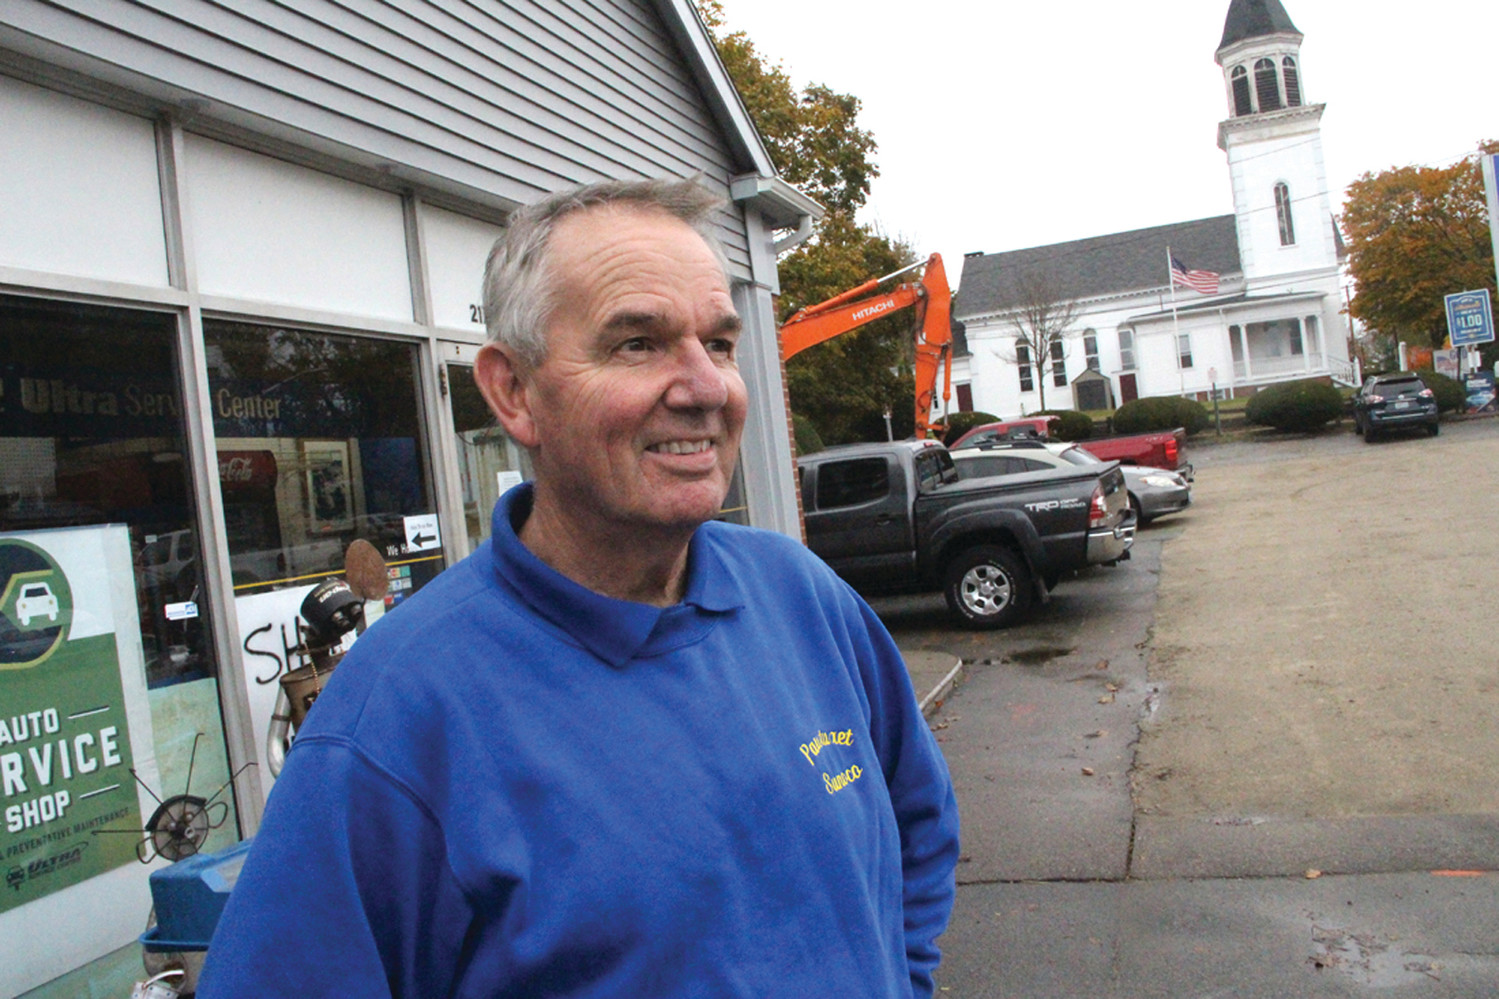 A SLOWER PACE: With the removal of pumps, Pat Grogan, who opened Pawtuxet Sunoco 43 years ago, looks forward to continuing to play a role as part of the community as Pawtuxet Auto service.